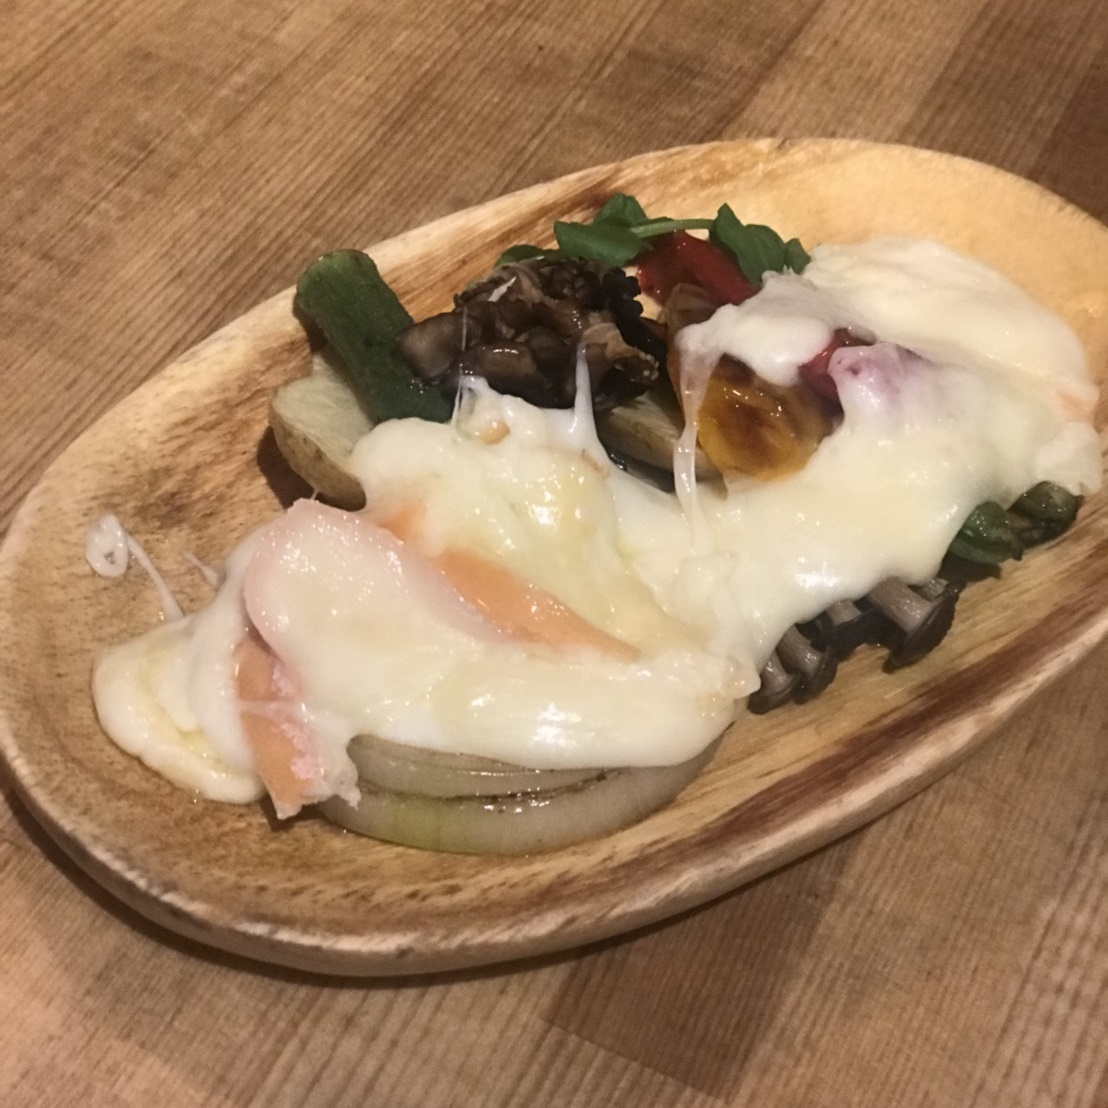 Grilled warm vegetables raclette cheese hang